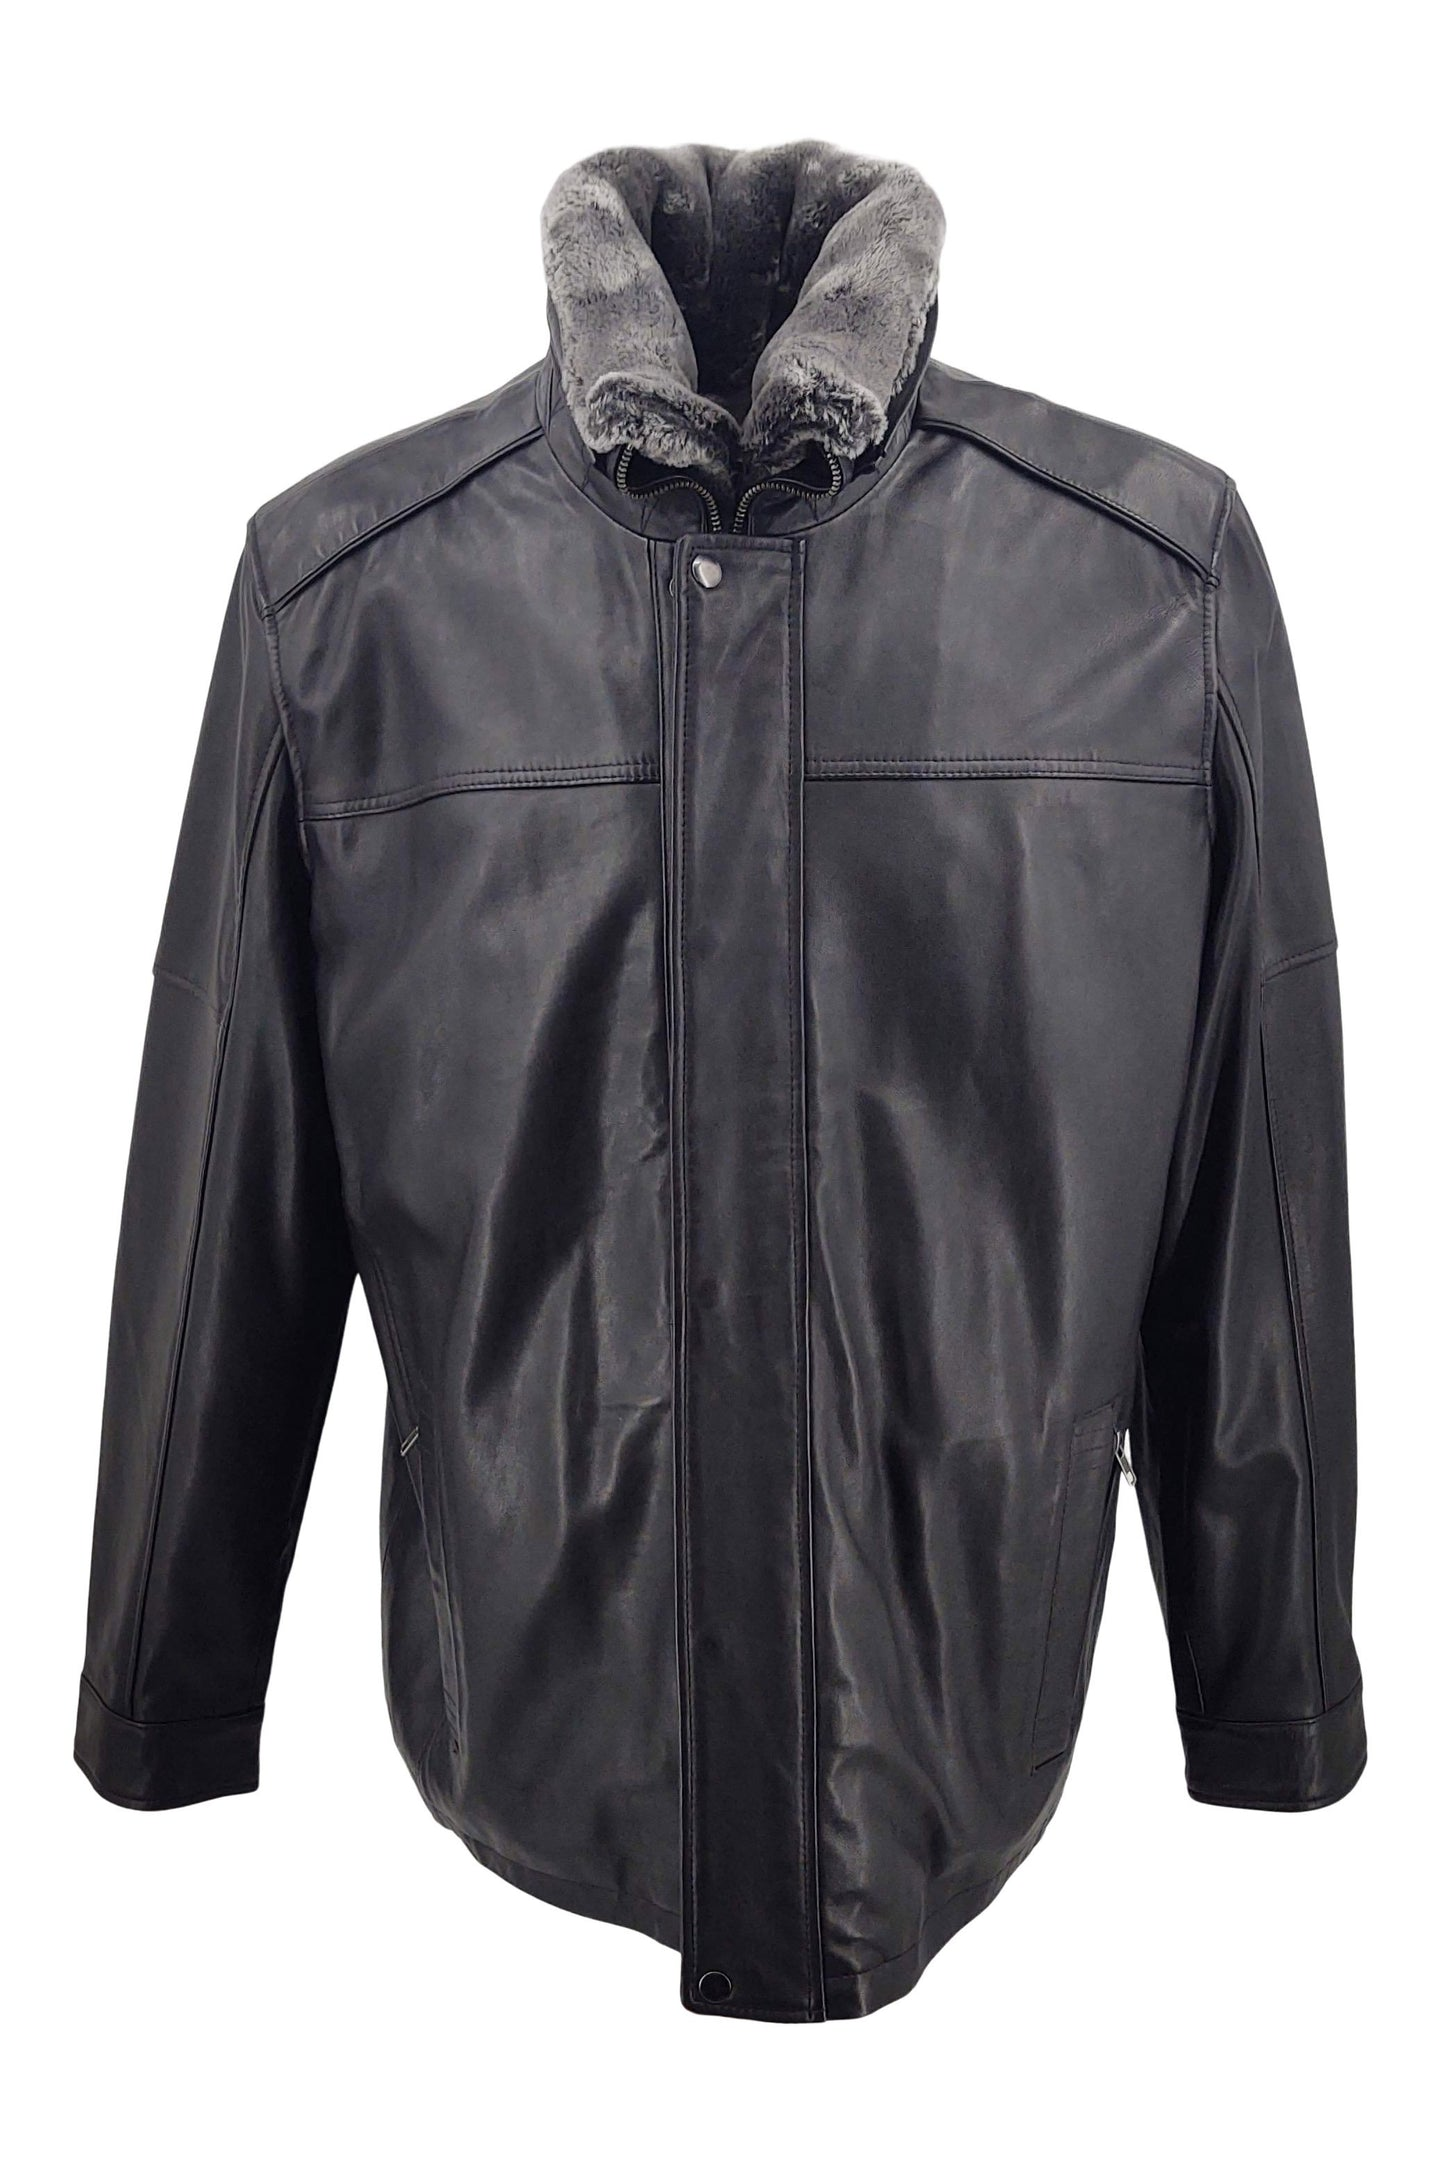 564 - Lamb New Zeeland Leather - Man - Black | STAMPE PELS